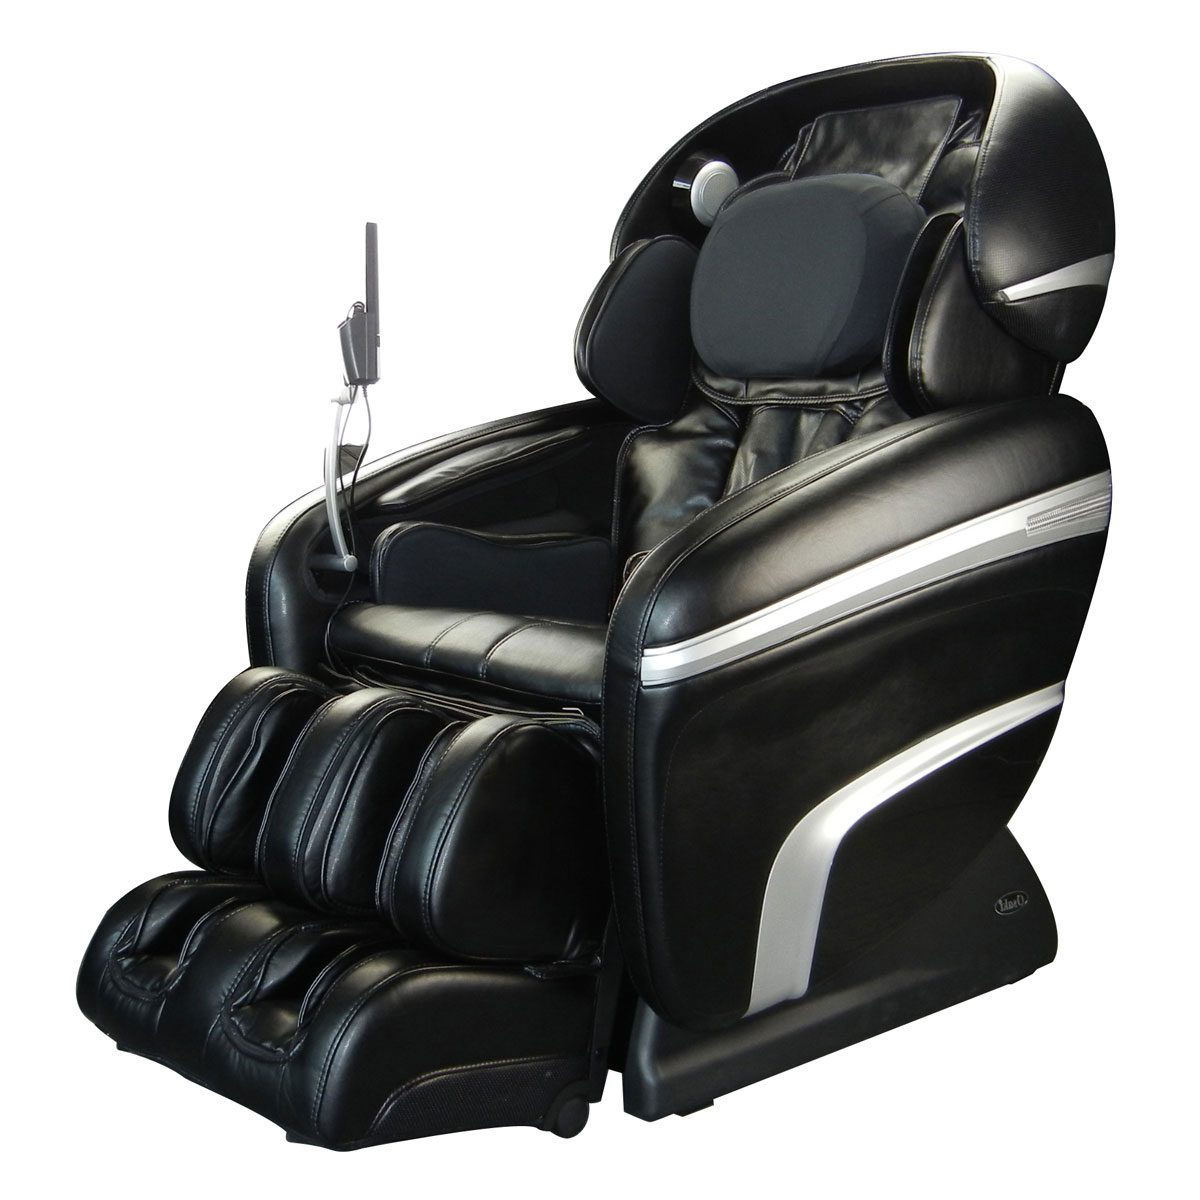 osaki 7075r massage chair stapleford ergonomic executive os experts